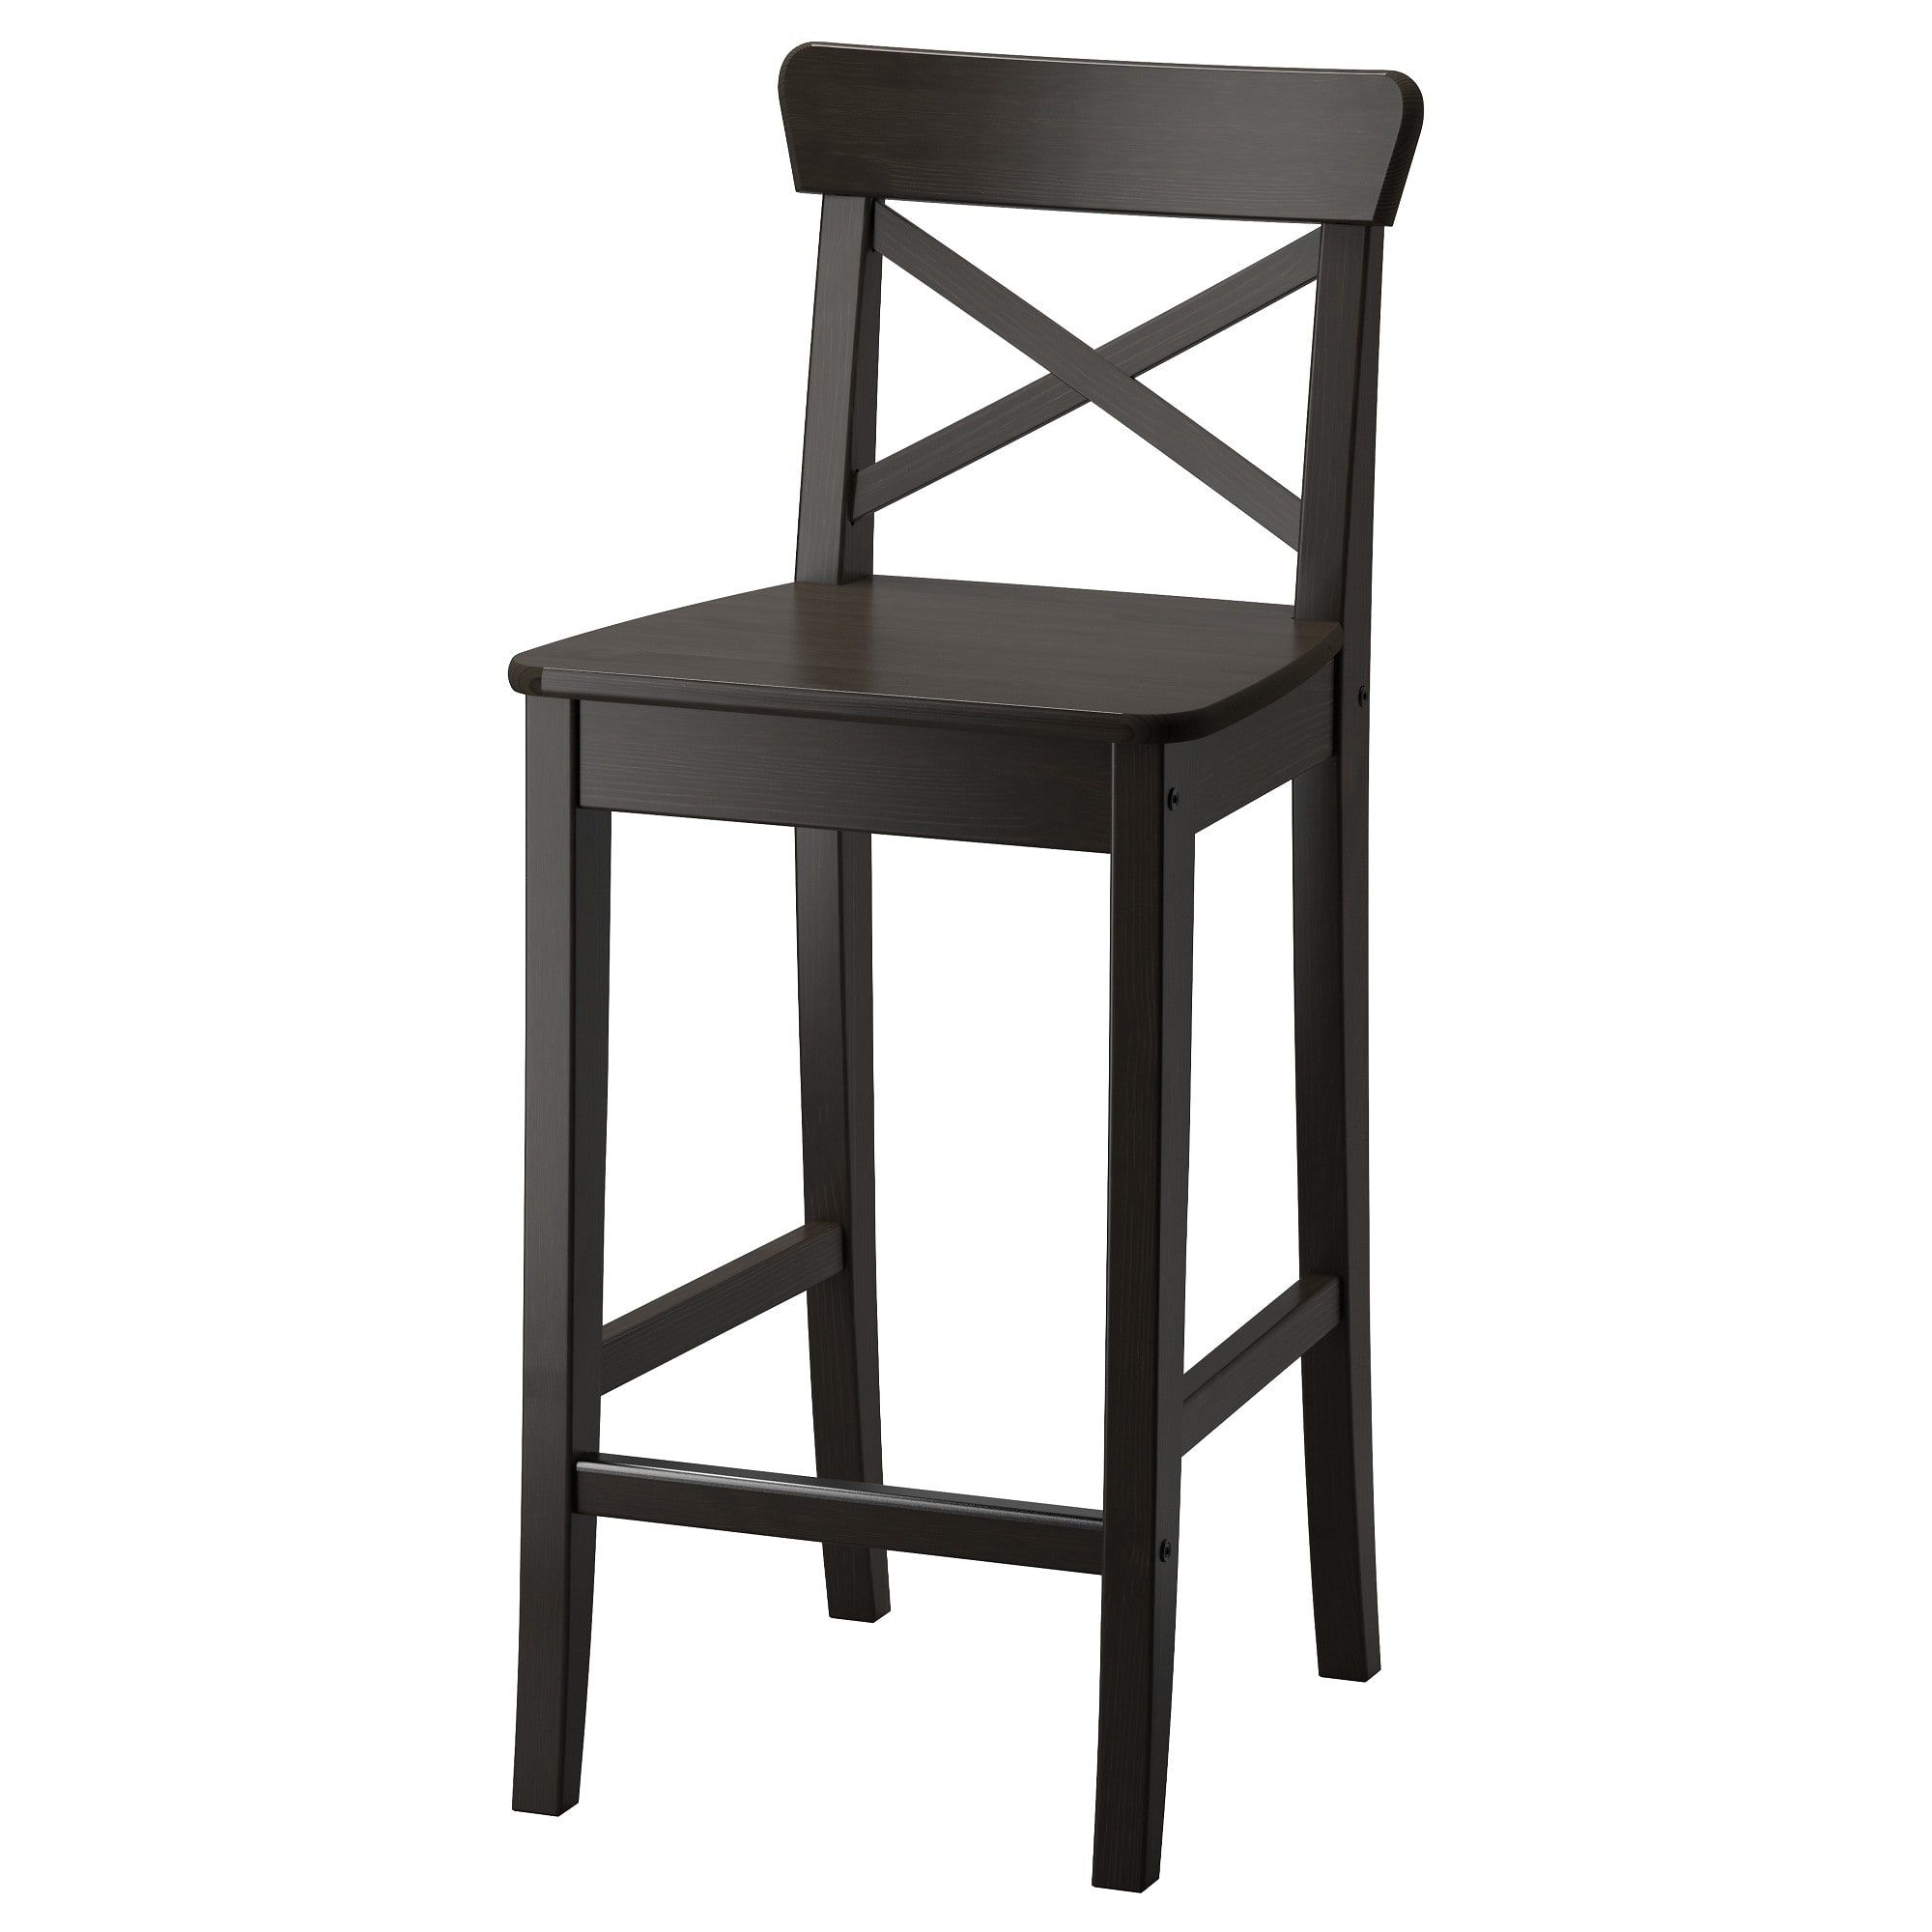 Merveilleux INGOLF Bar Stool With Backrest   IKEA